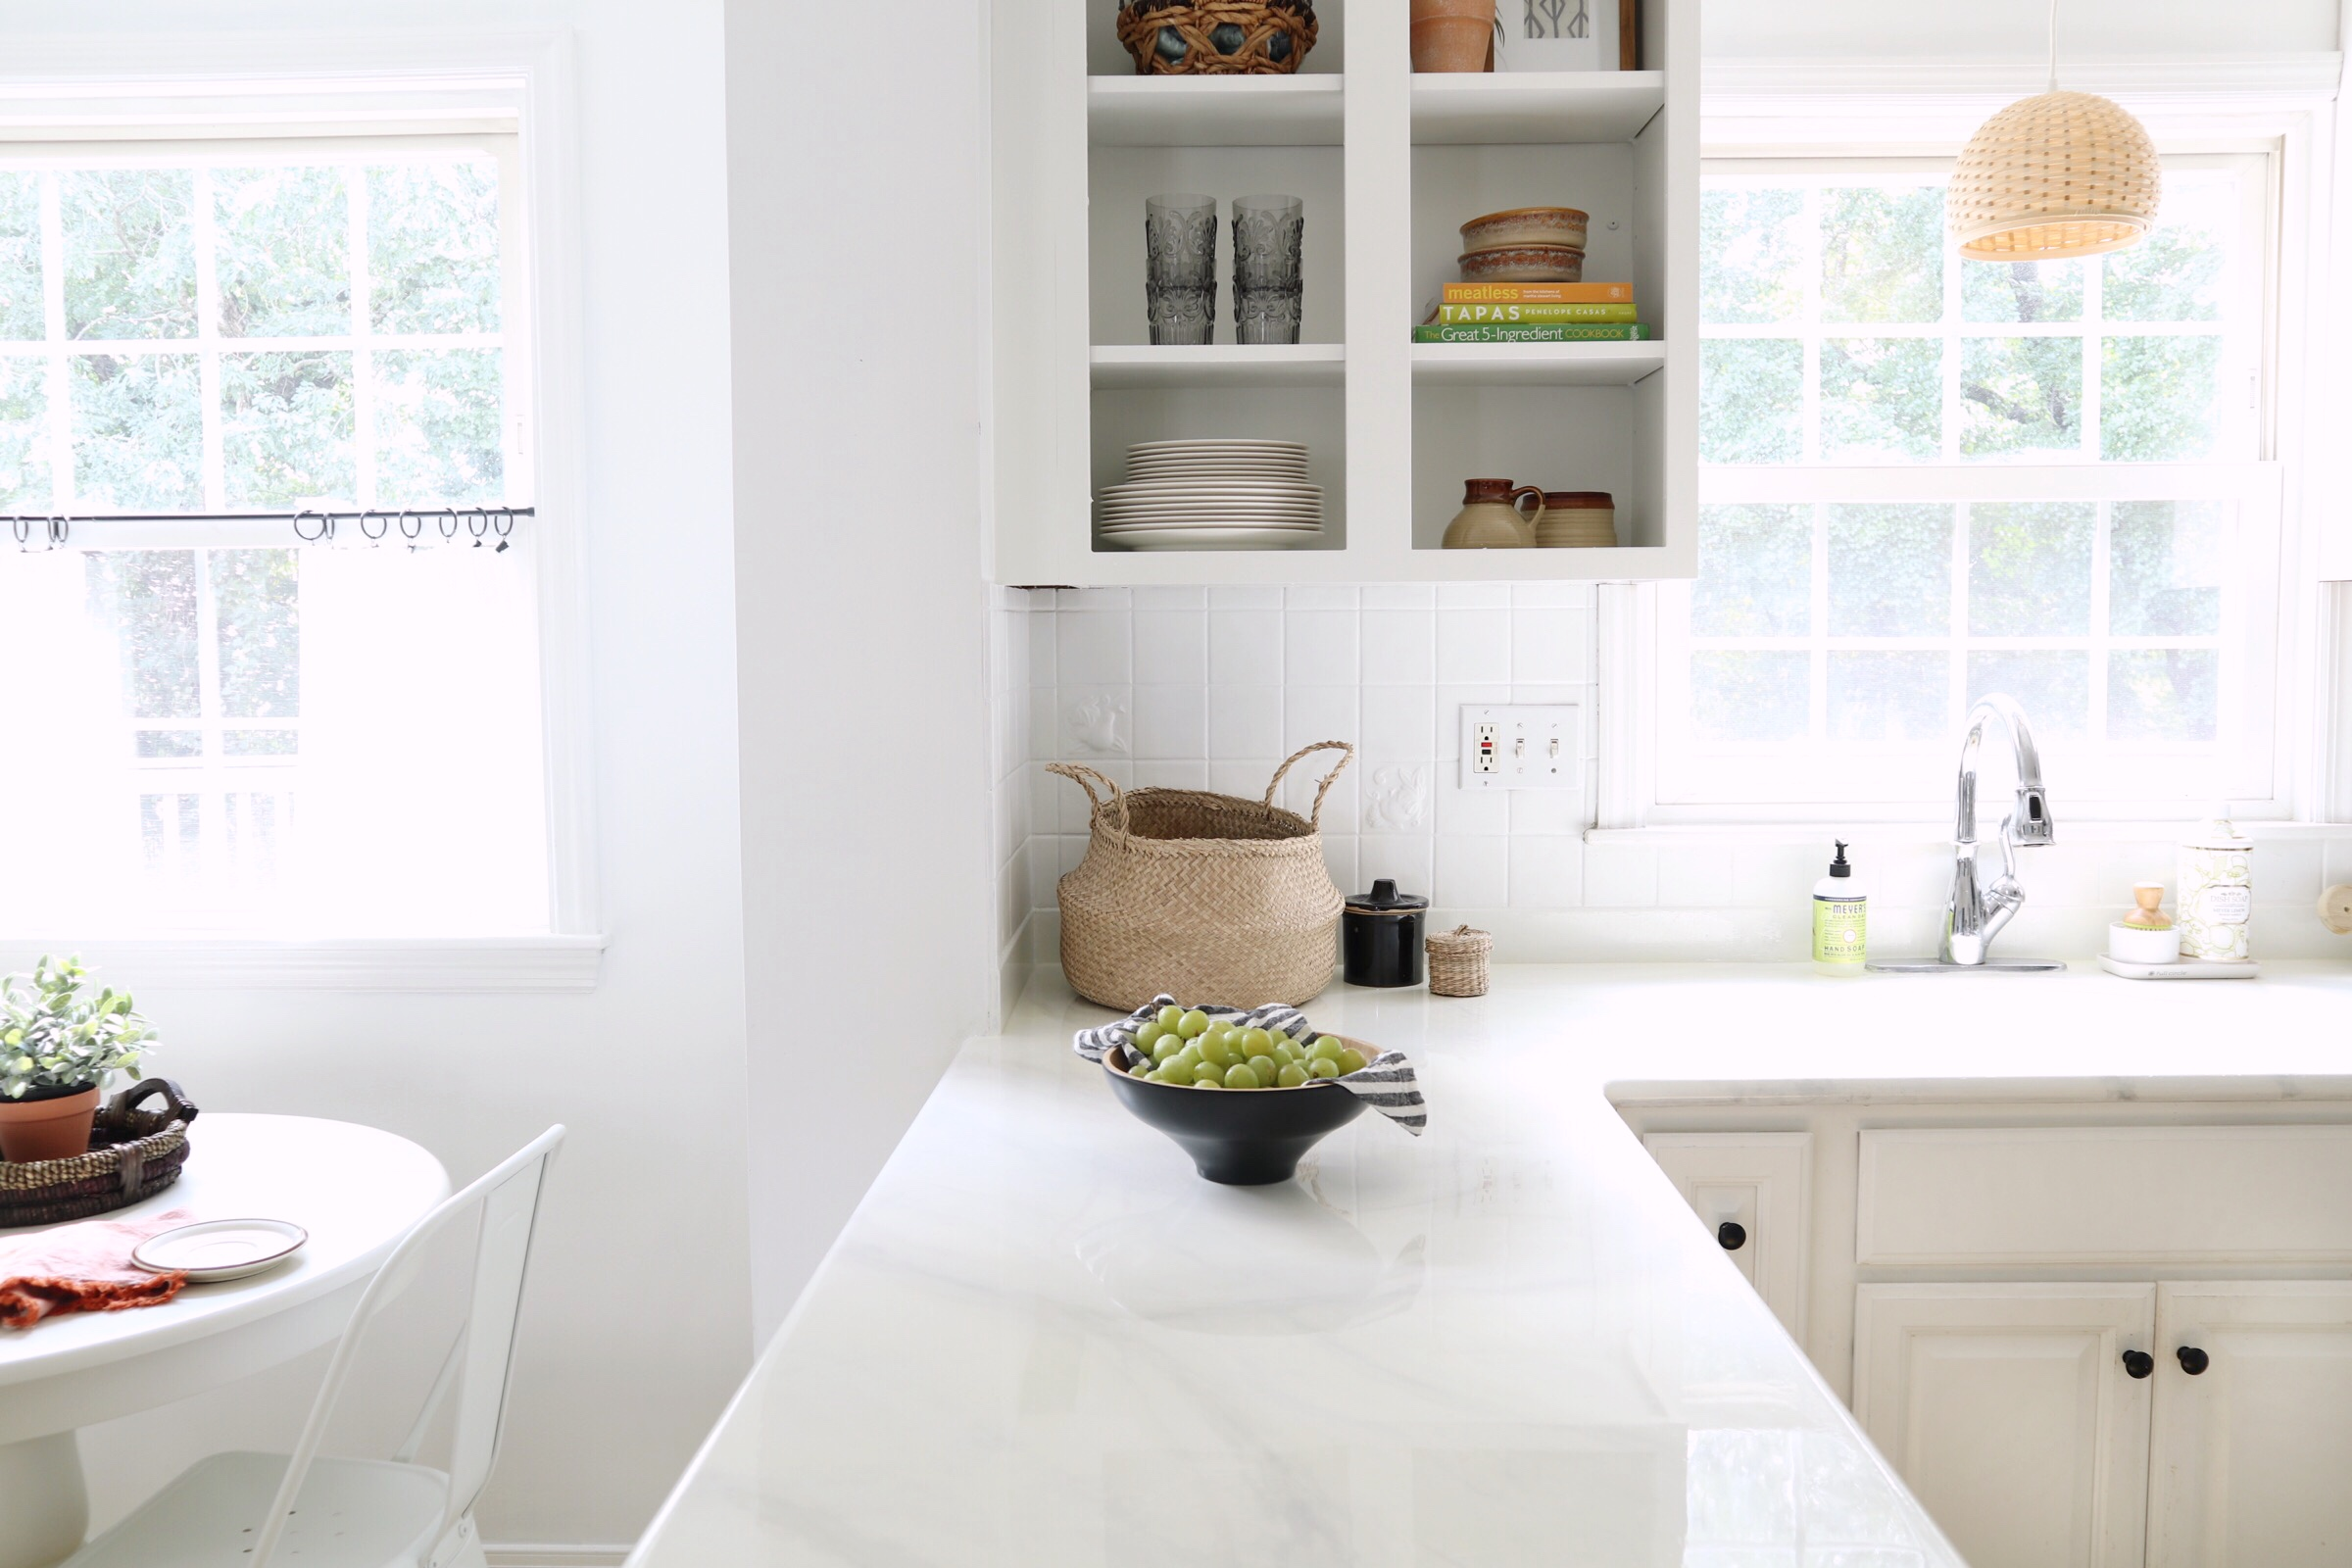 CLICK HERE TO CHECK OUT MY DIY PAINTED COUNTERS!